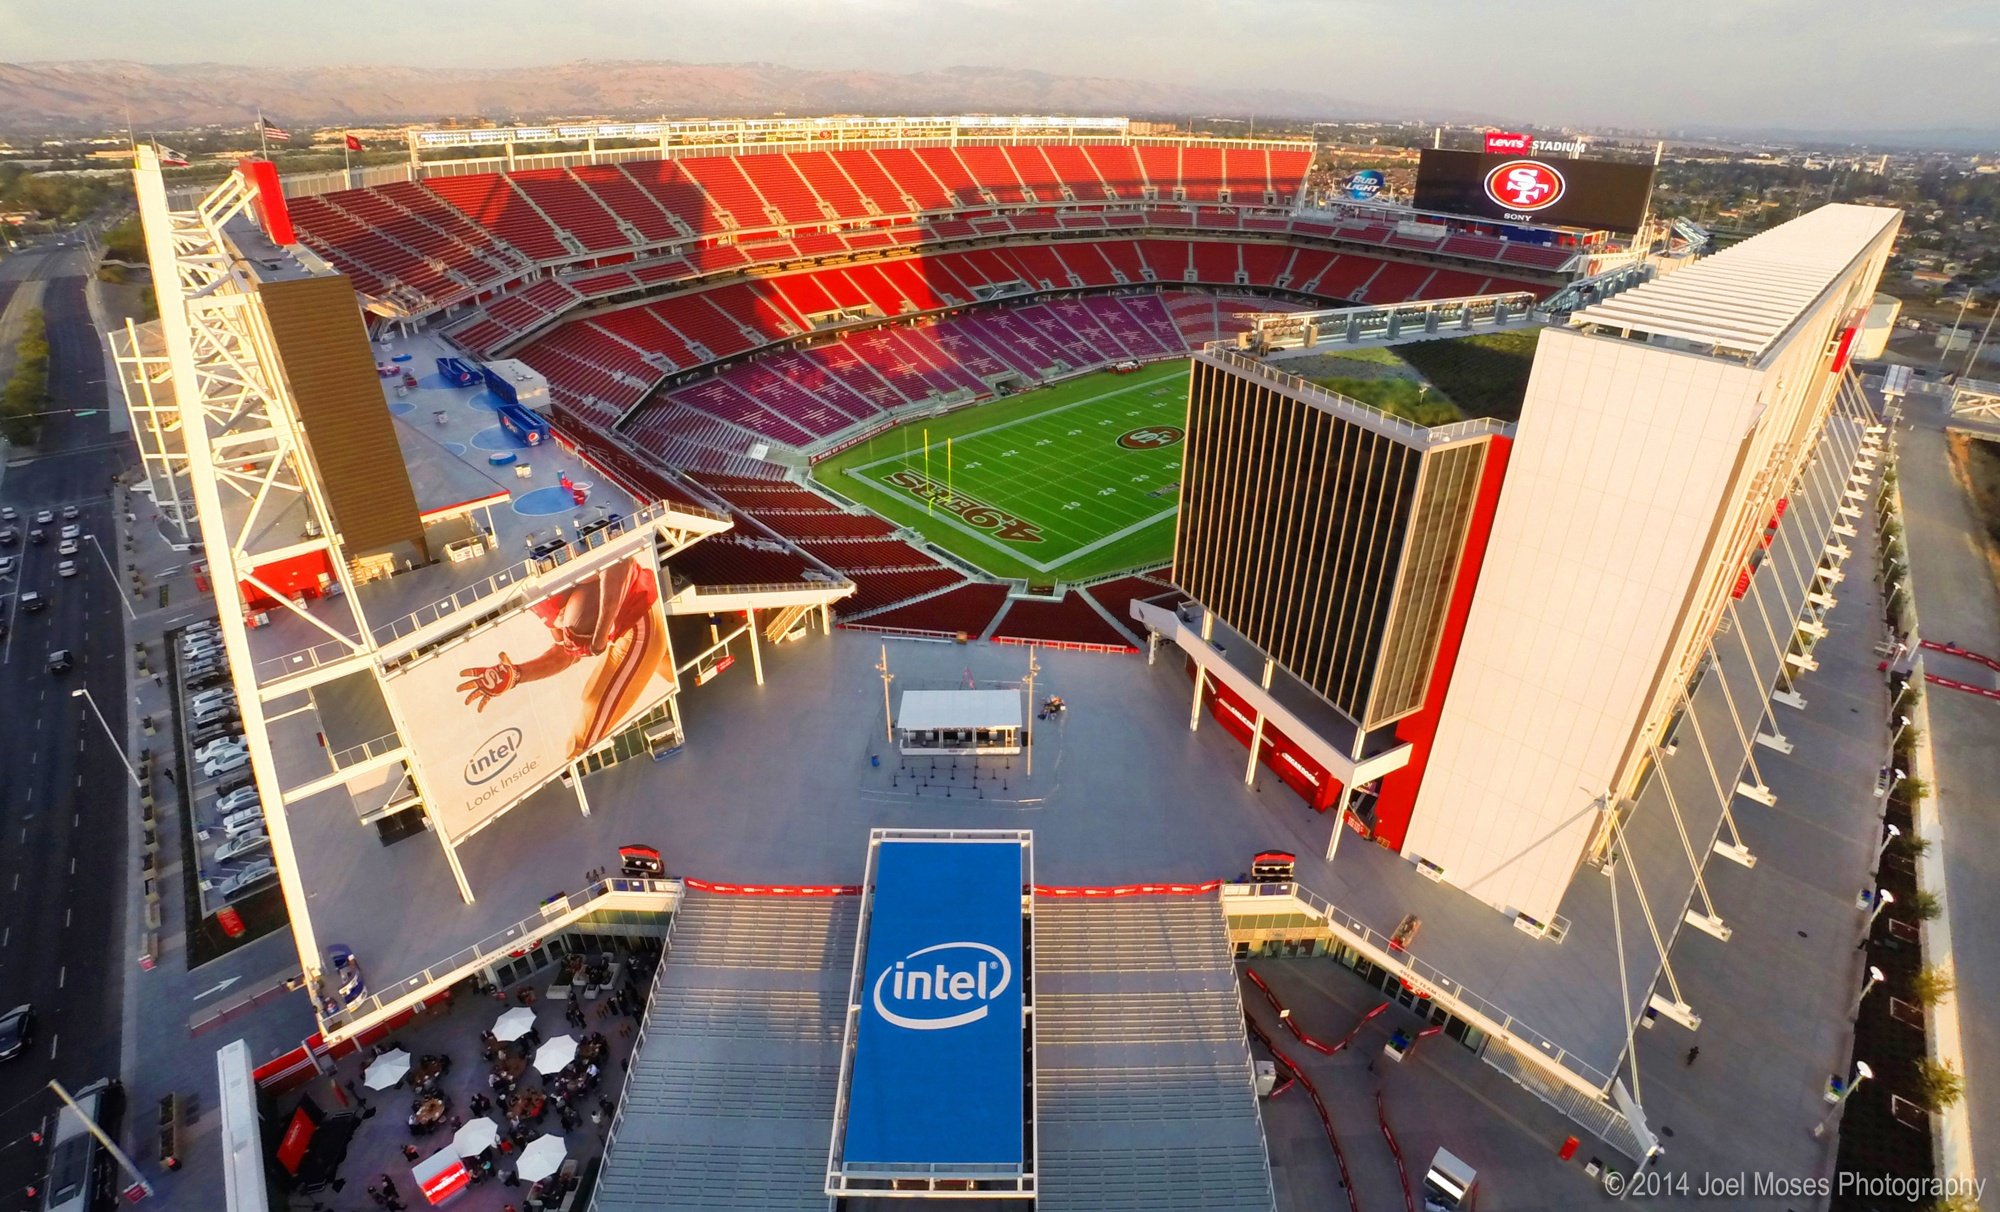 eeed606b2 Innovative Water Solutions at Levi's Stadium Control Moisture in Masonry  and Stormwater Runoff